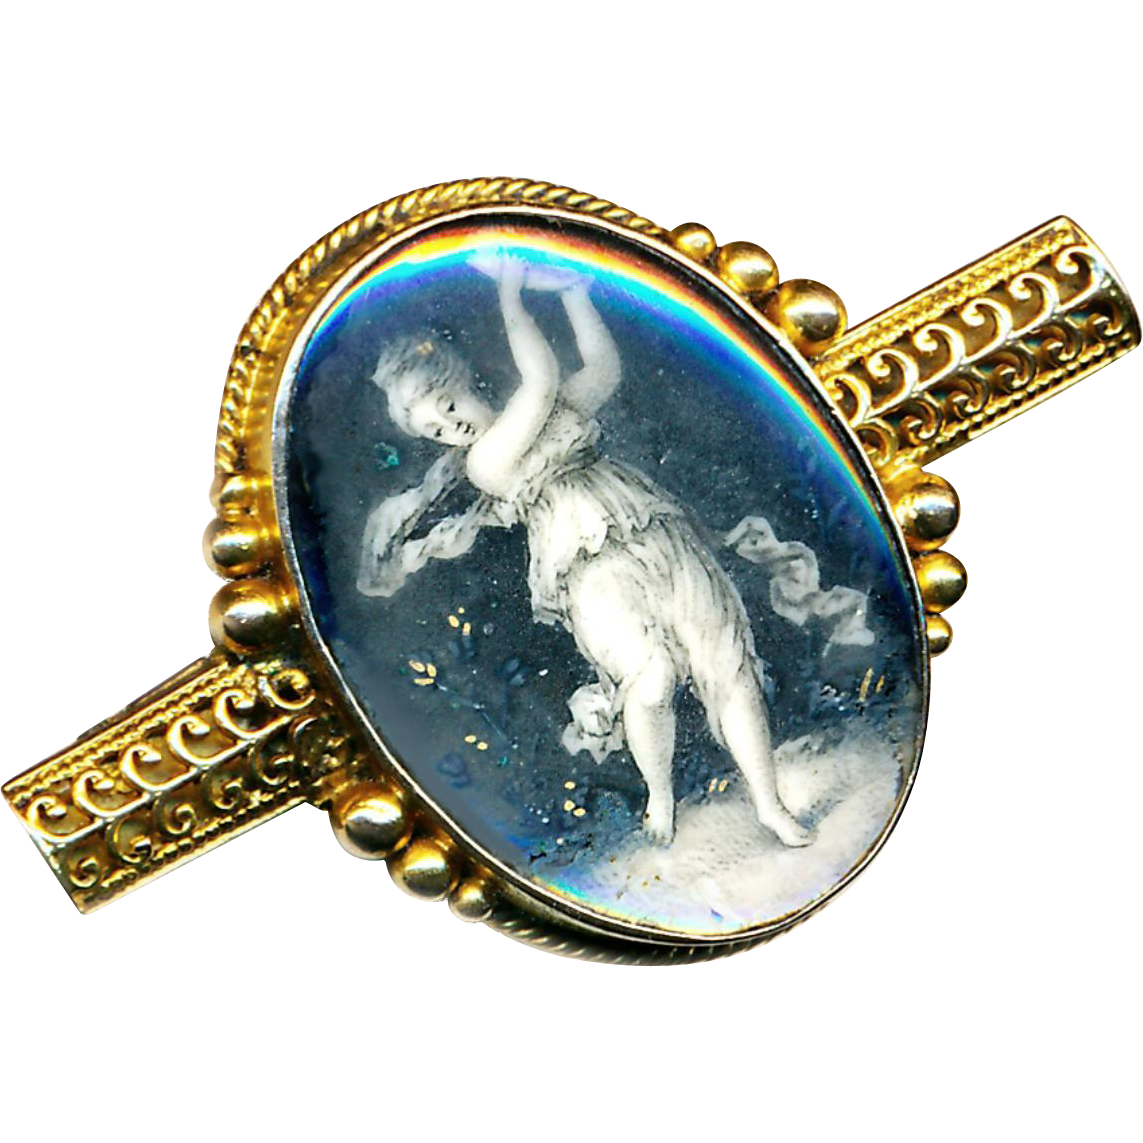 Brooch--Early 19th C. En Grisaille Painting Under Glass of Muse with Tambourine in 18 Karat Gold